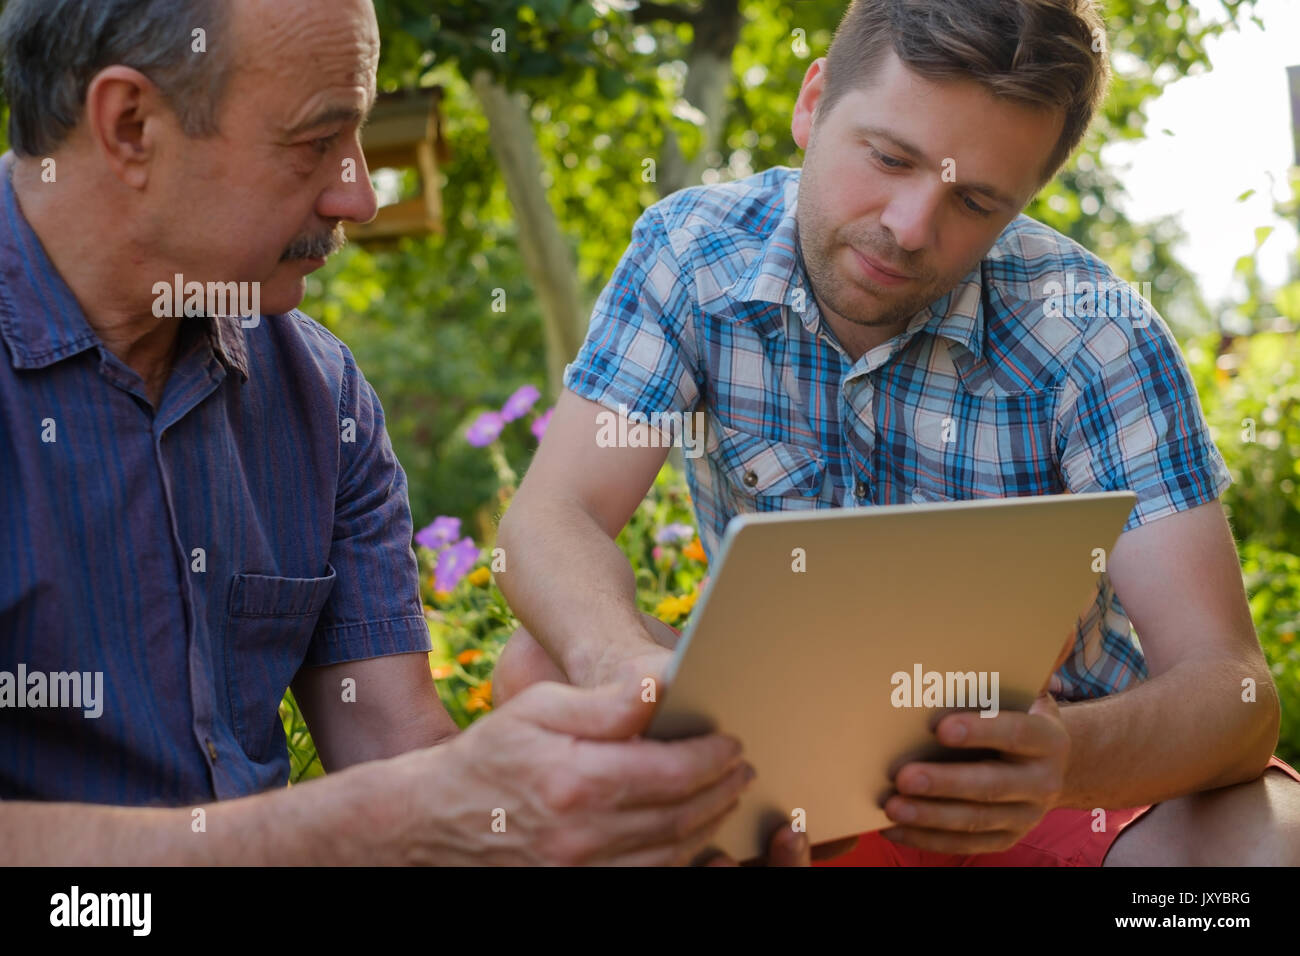 Man Searching For Something Stock Photos & Man Searching